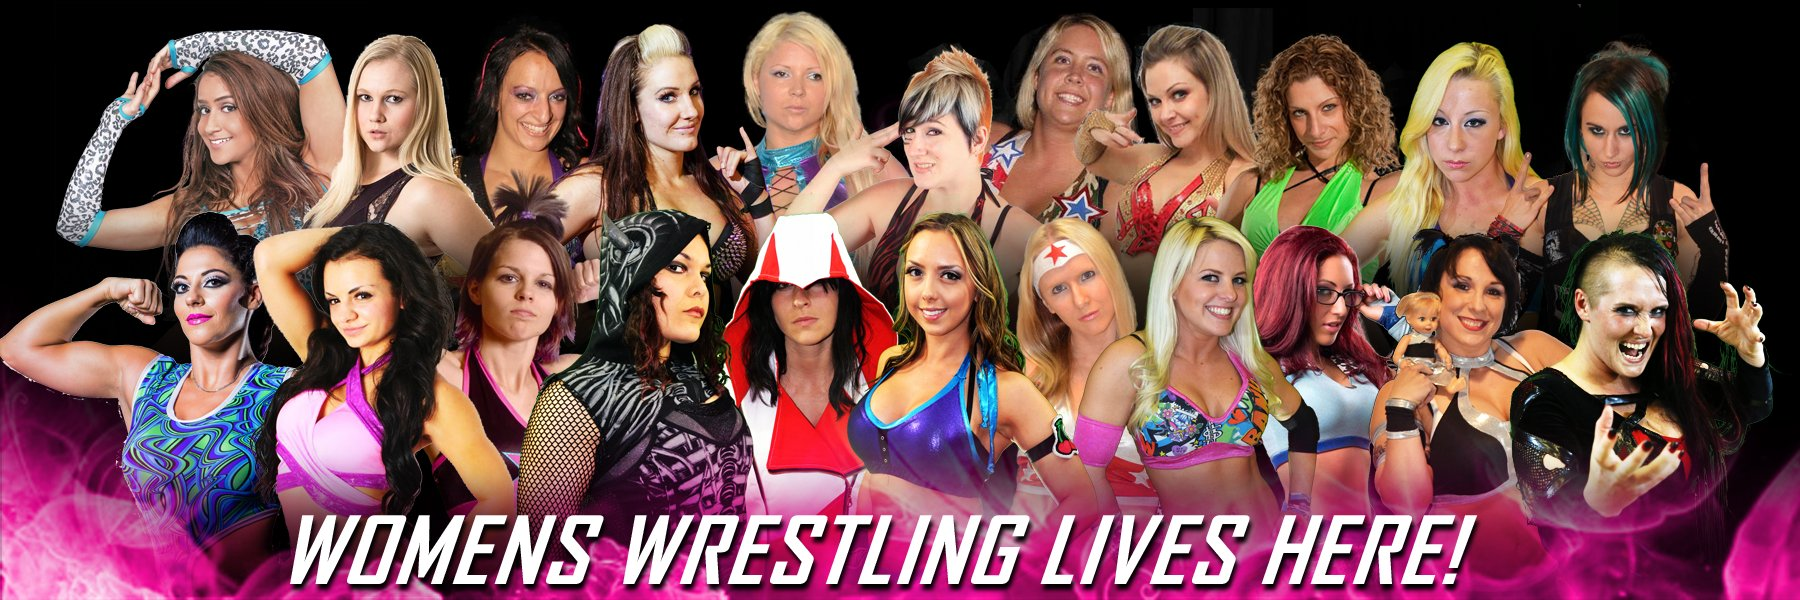 Women's Wrestling Lives Here!